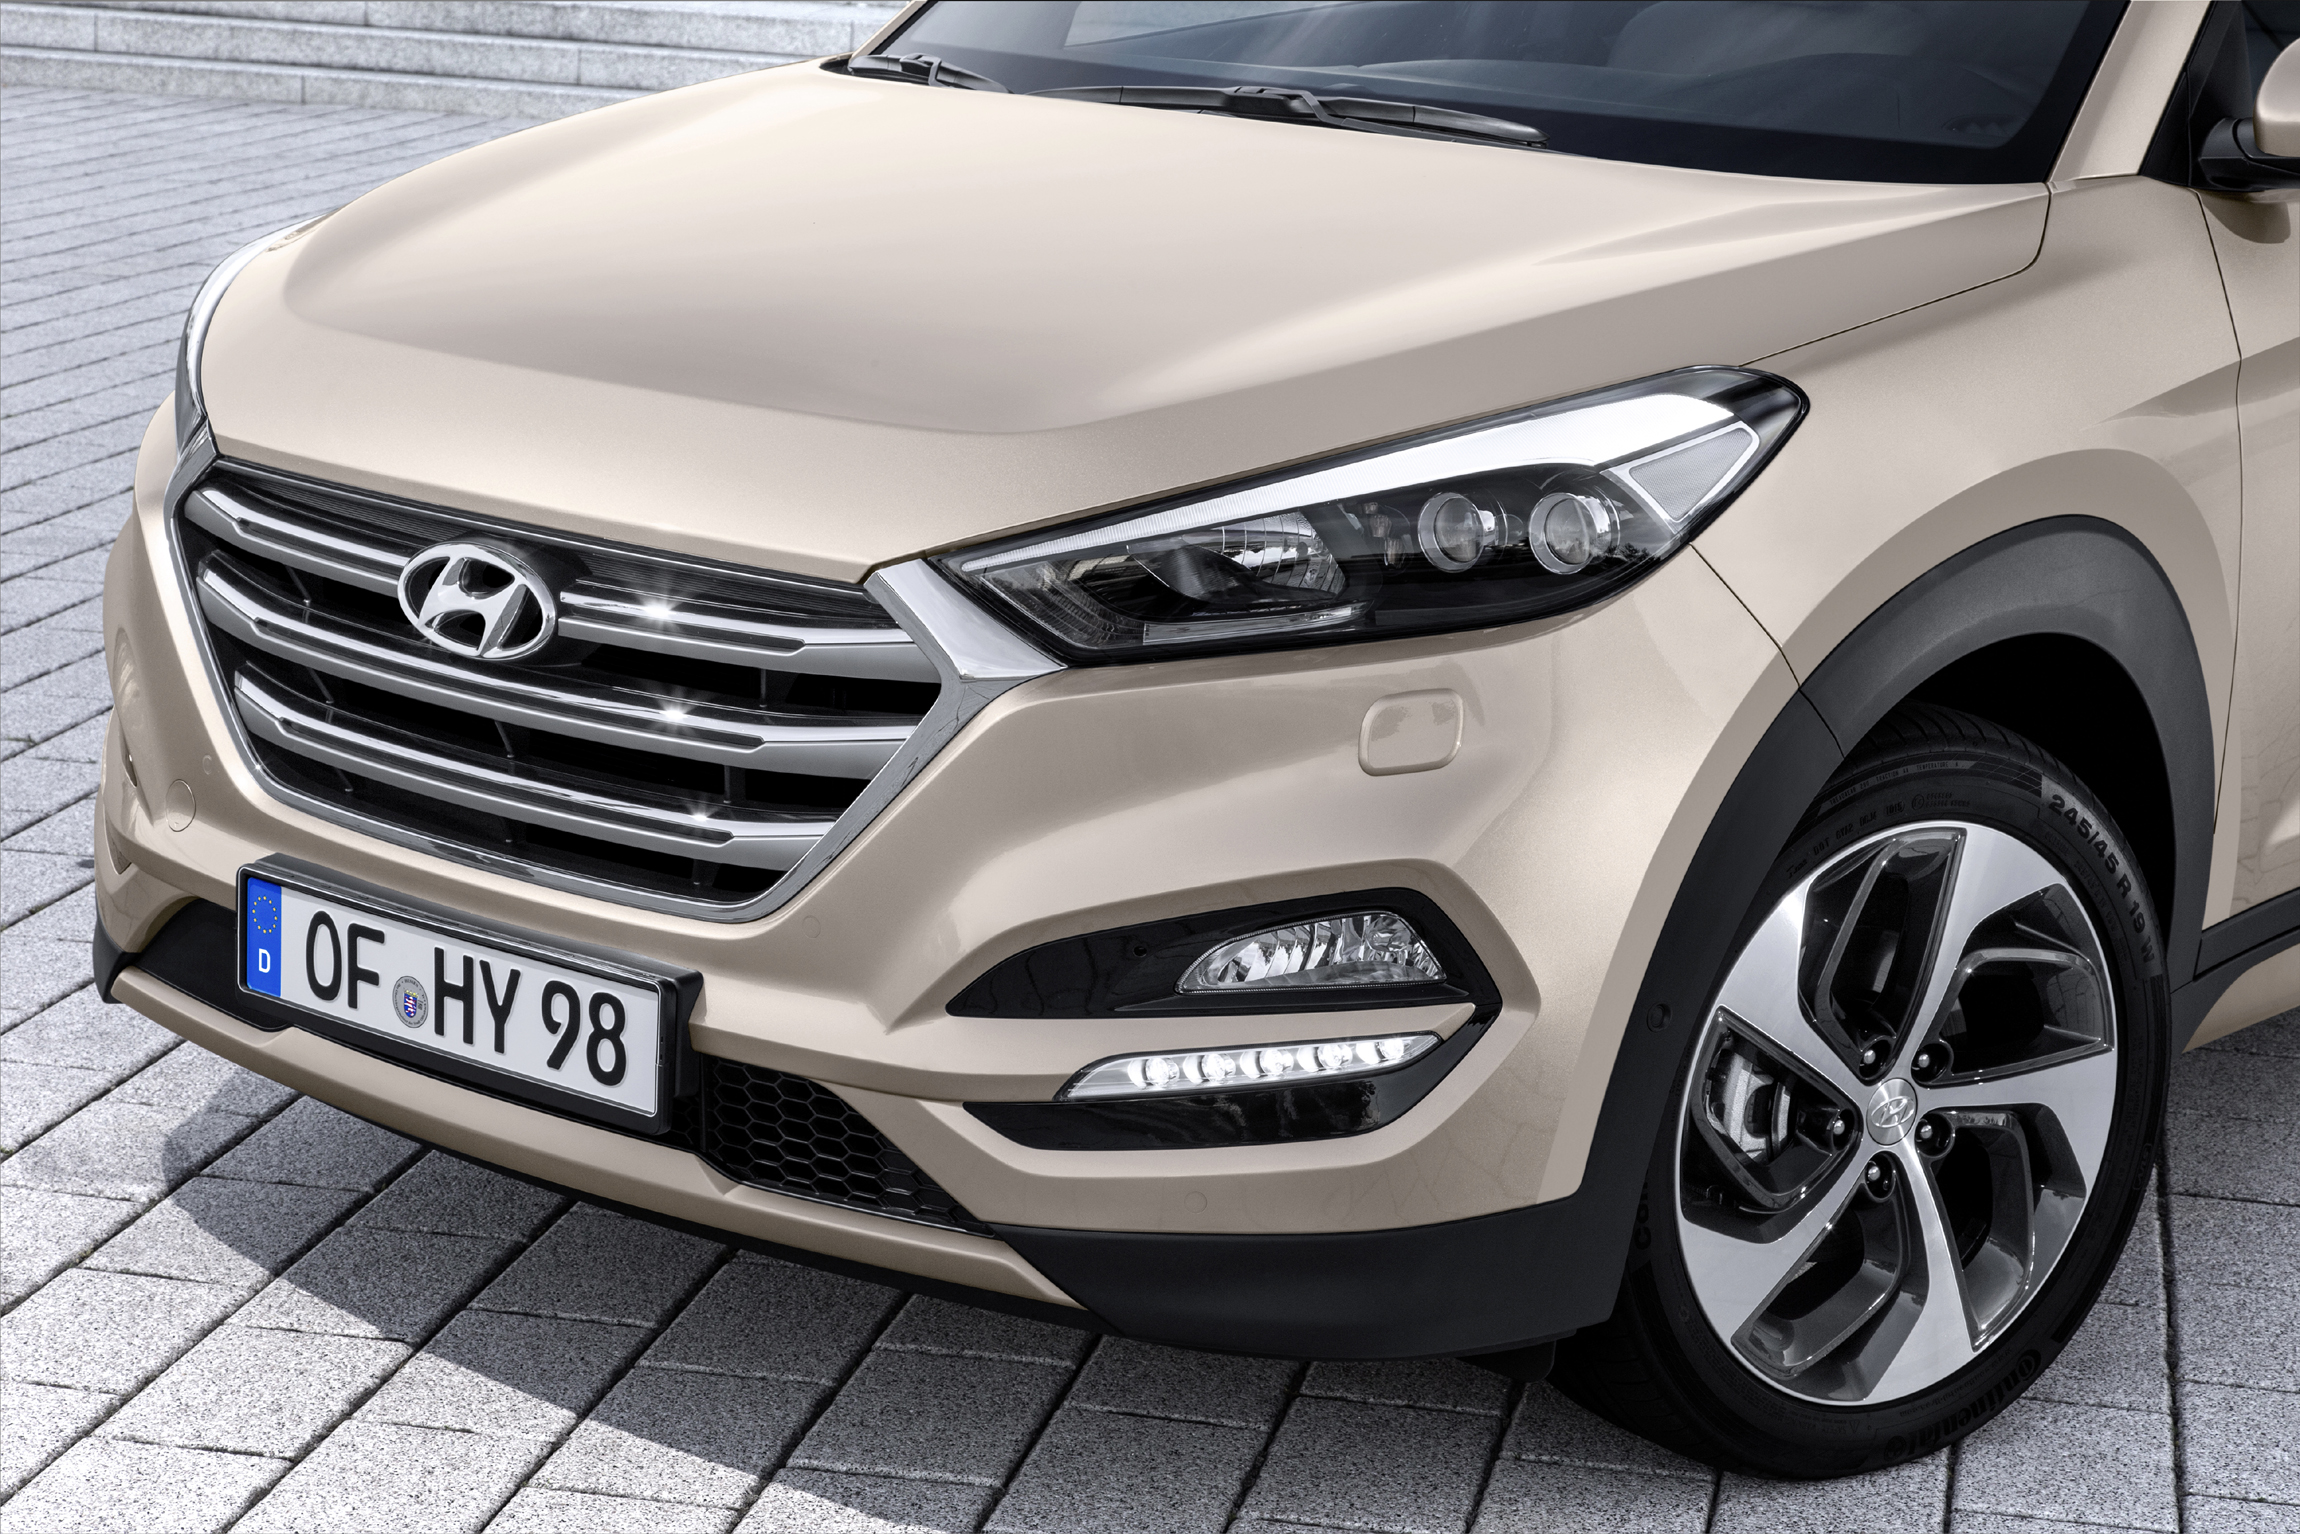 essai hyundai tucson 1 7 crdi 115 ch le plus 39 fleet 39 de la gamme link2fleet link2fleet. Black Bedroom Furniture Sets. Home Design Ideas